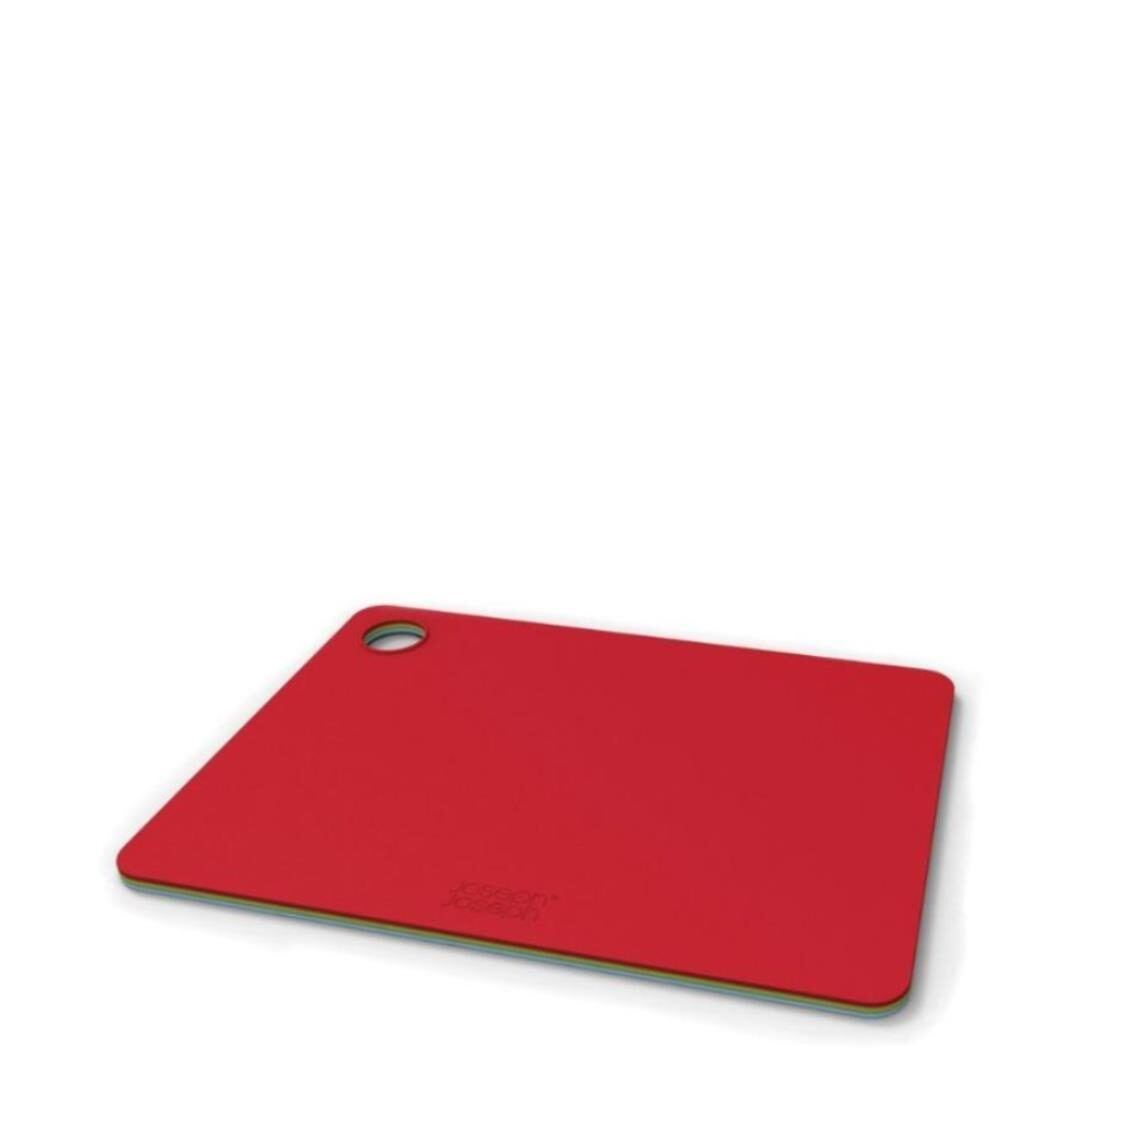 Easy Snap Double Sided Chopping Mats 3pc Set 92104